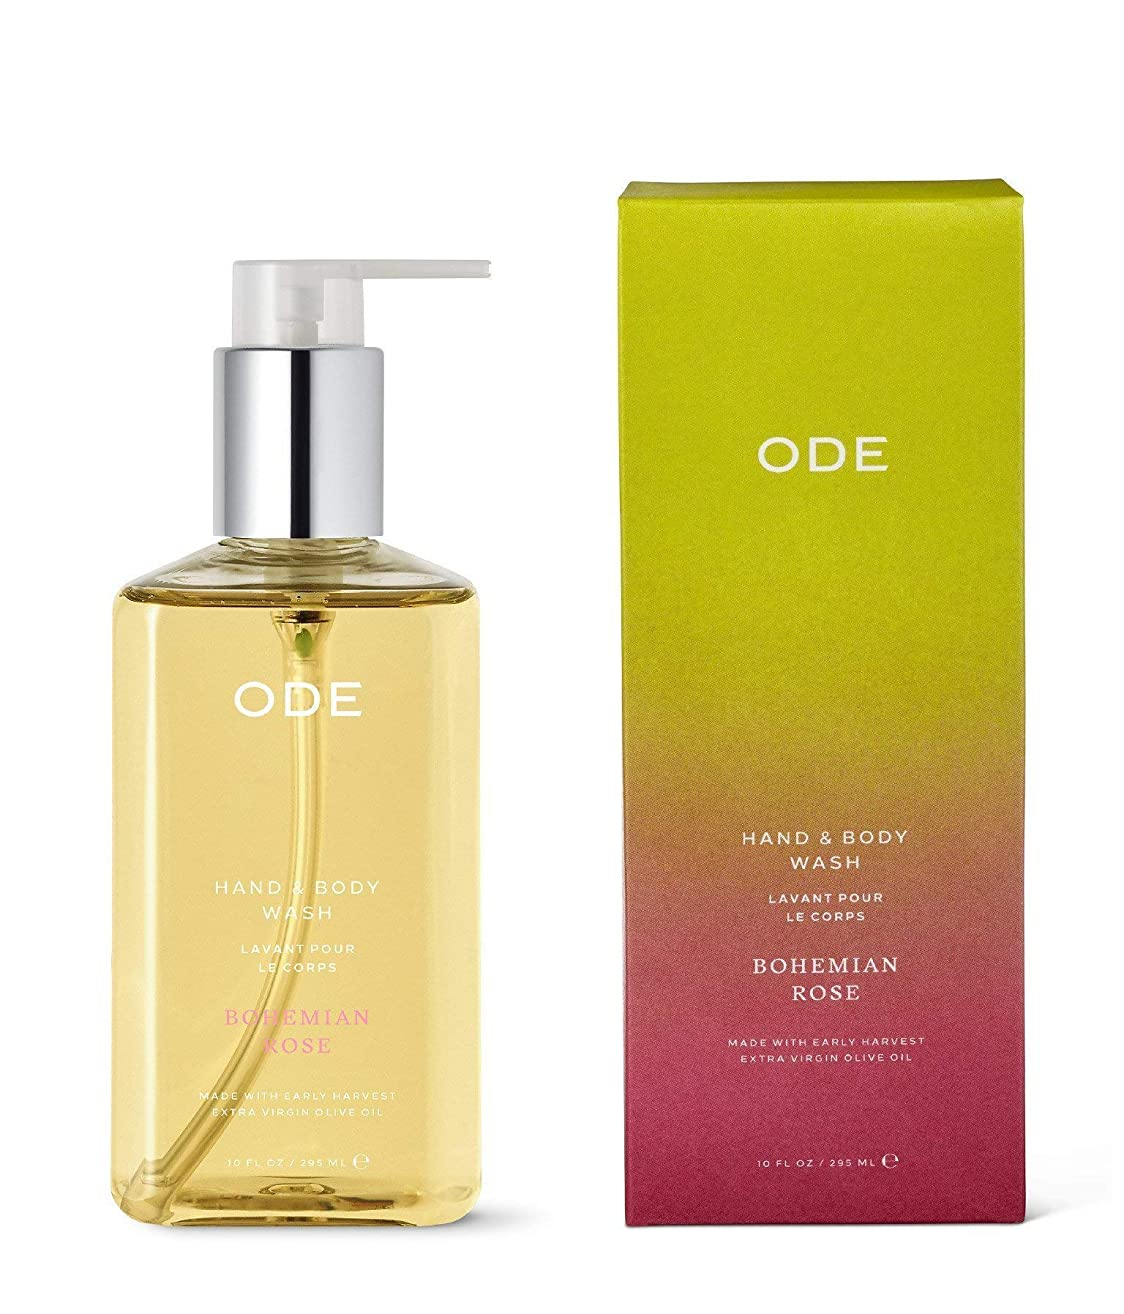 ODE natural beauty - Bohemian Rose Hand and Body Wash